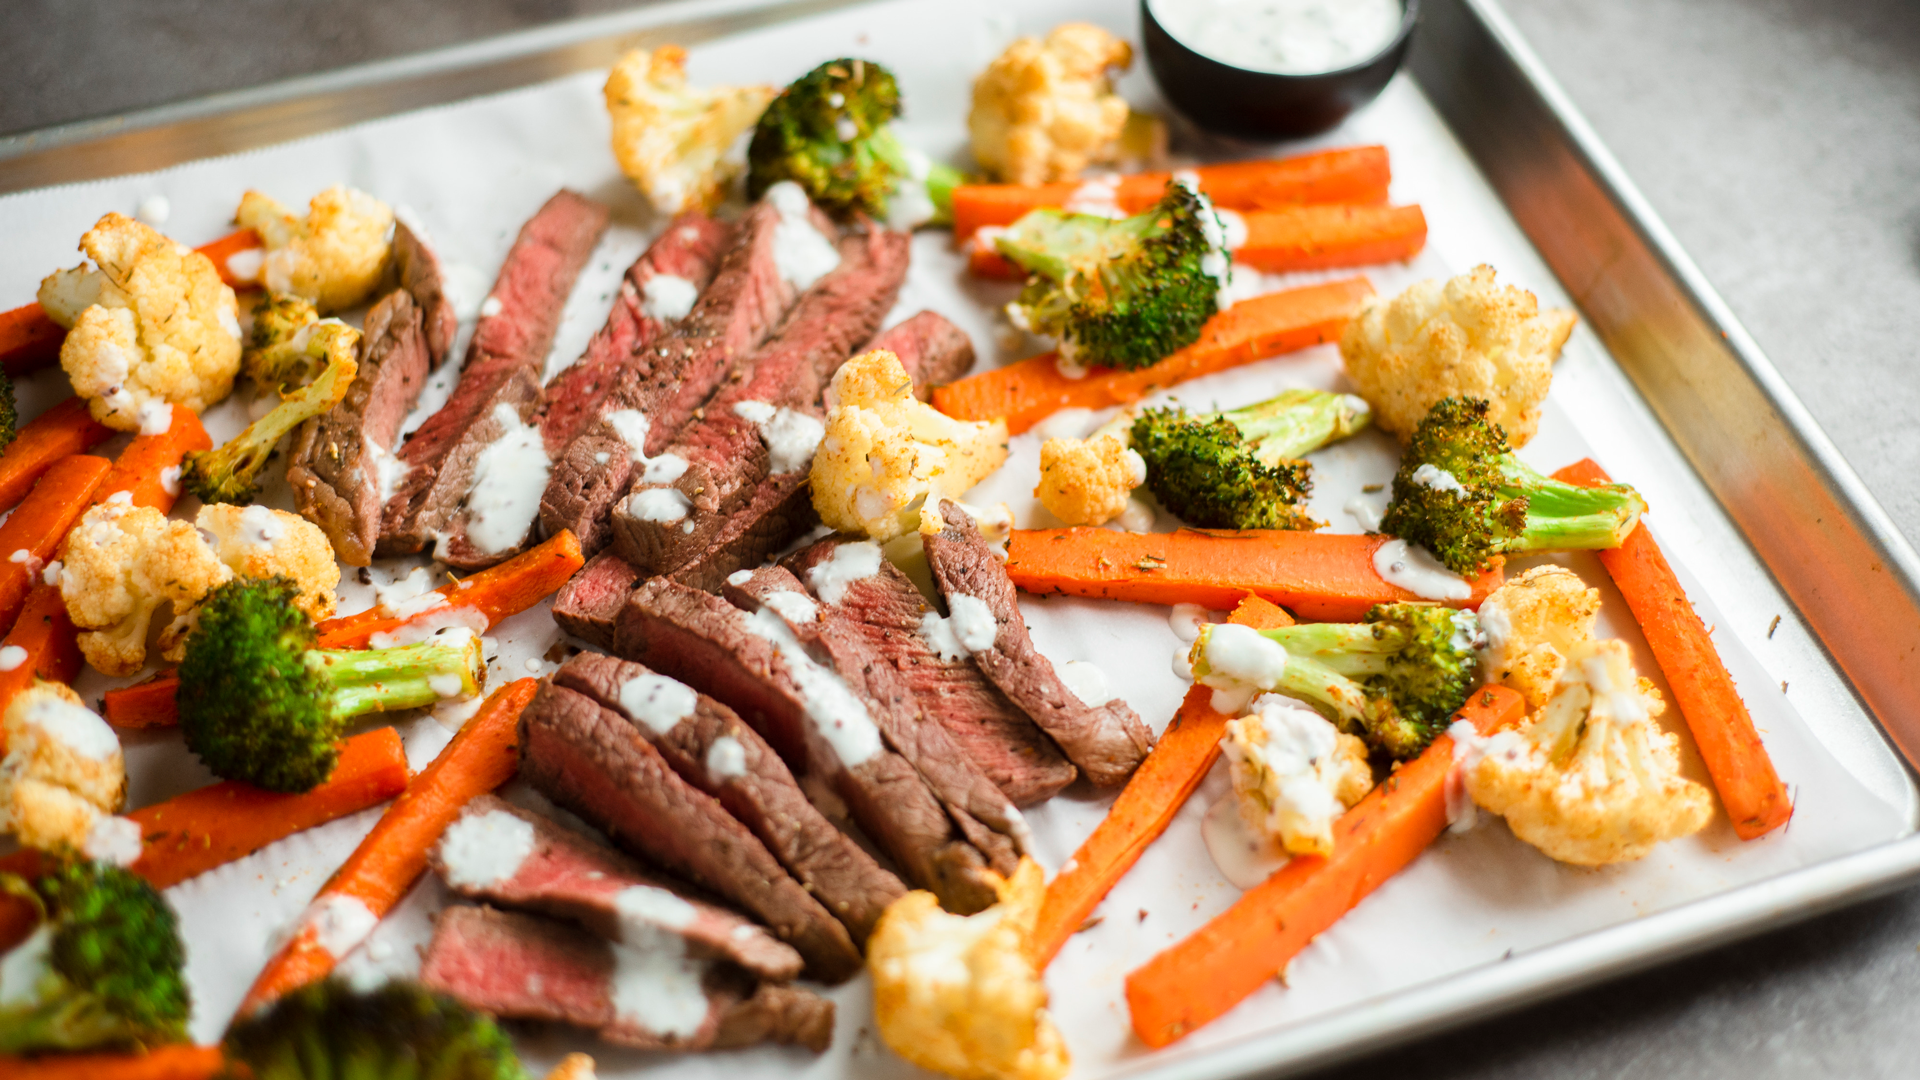 Steak and roasted vegetable sheet-pan dinner